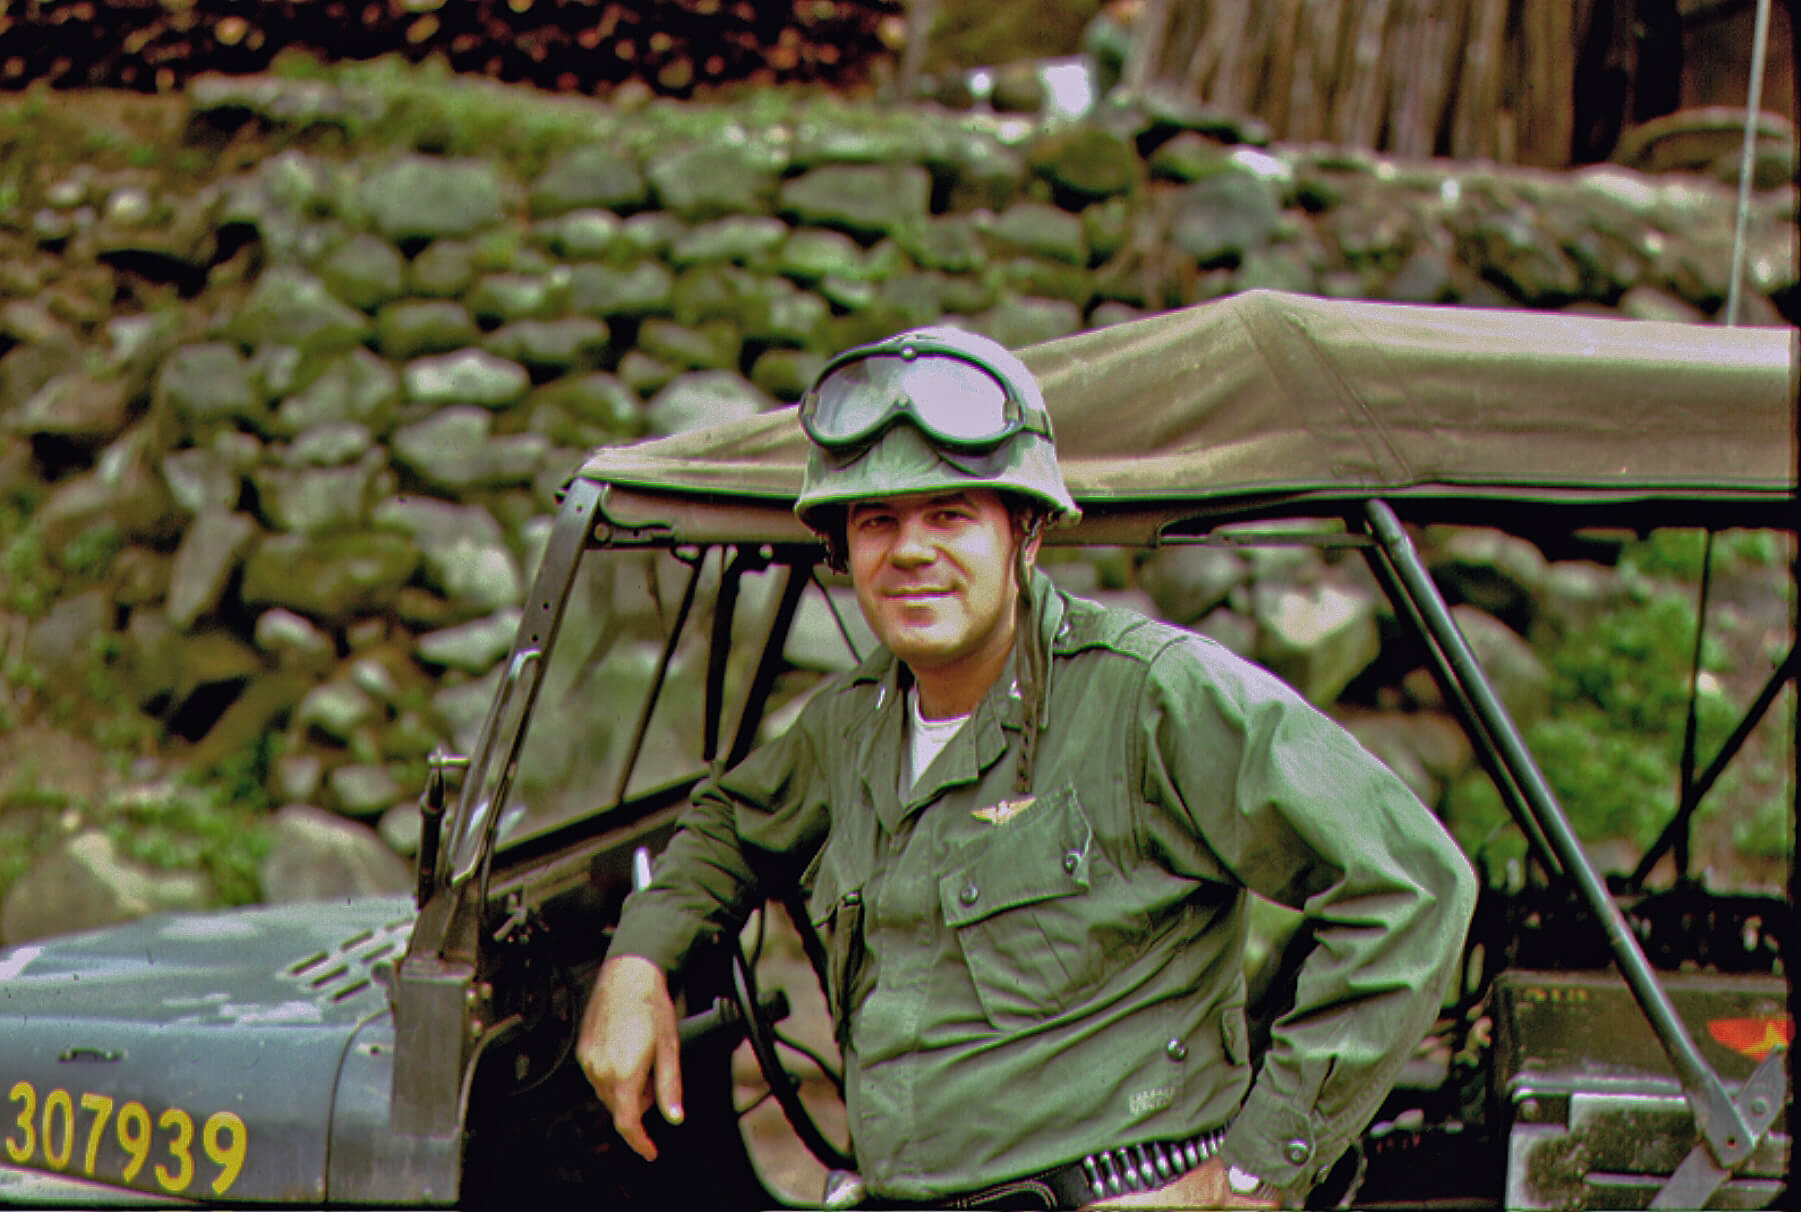 Pilot standing in front of a Jeep